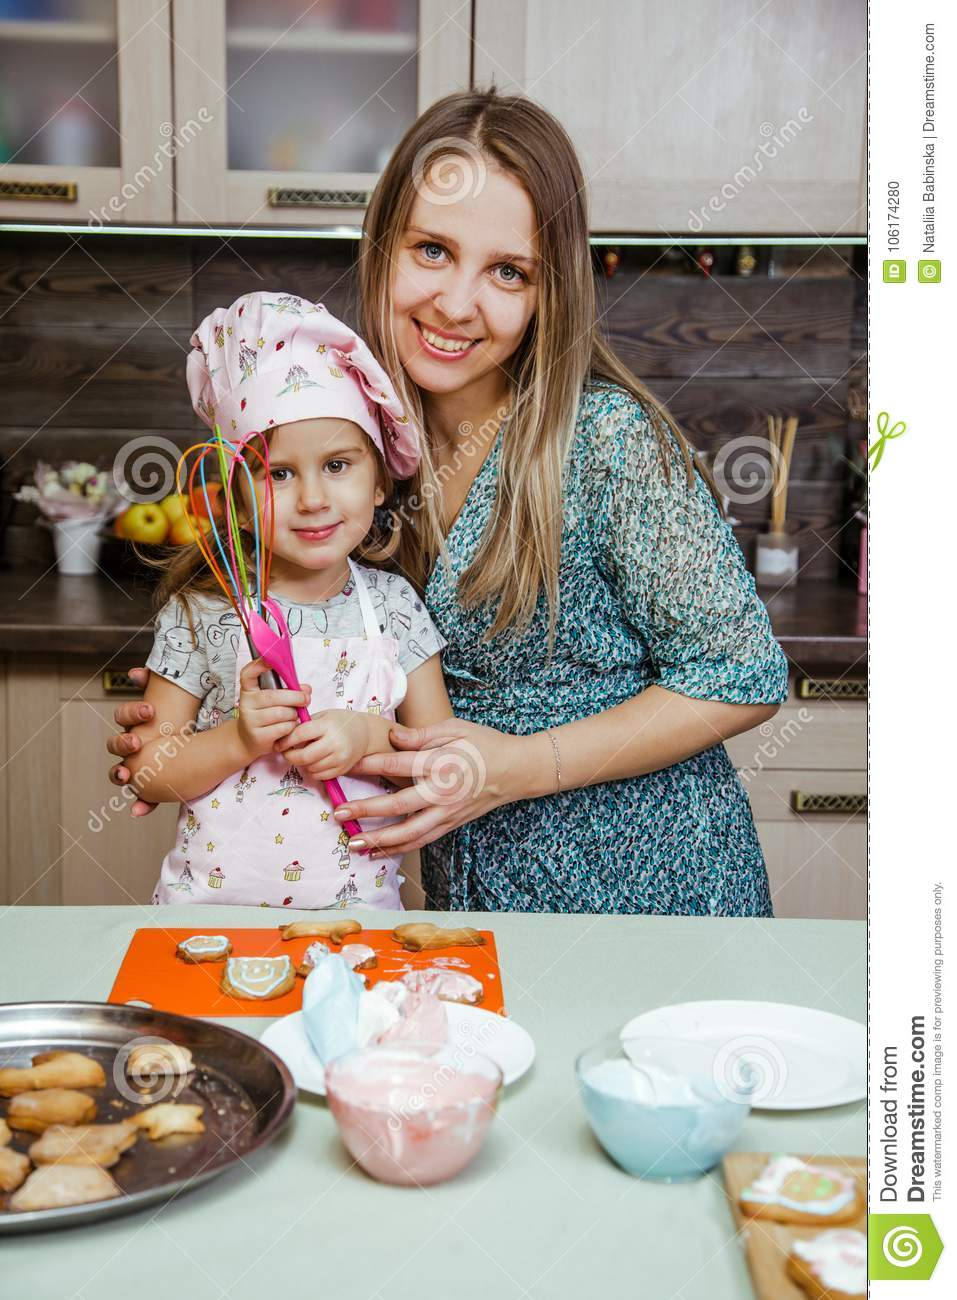 Child kitchen girls cook apron cupcake cookies small funny three sisters cap cream cream decor mother mom spoon